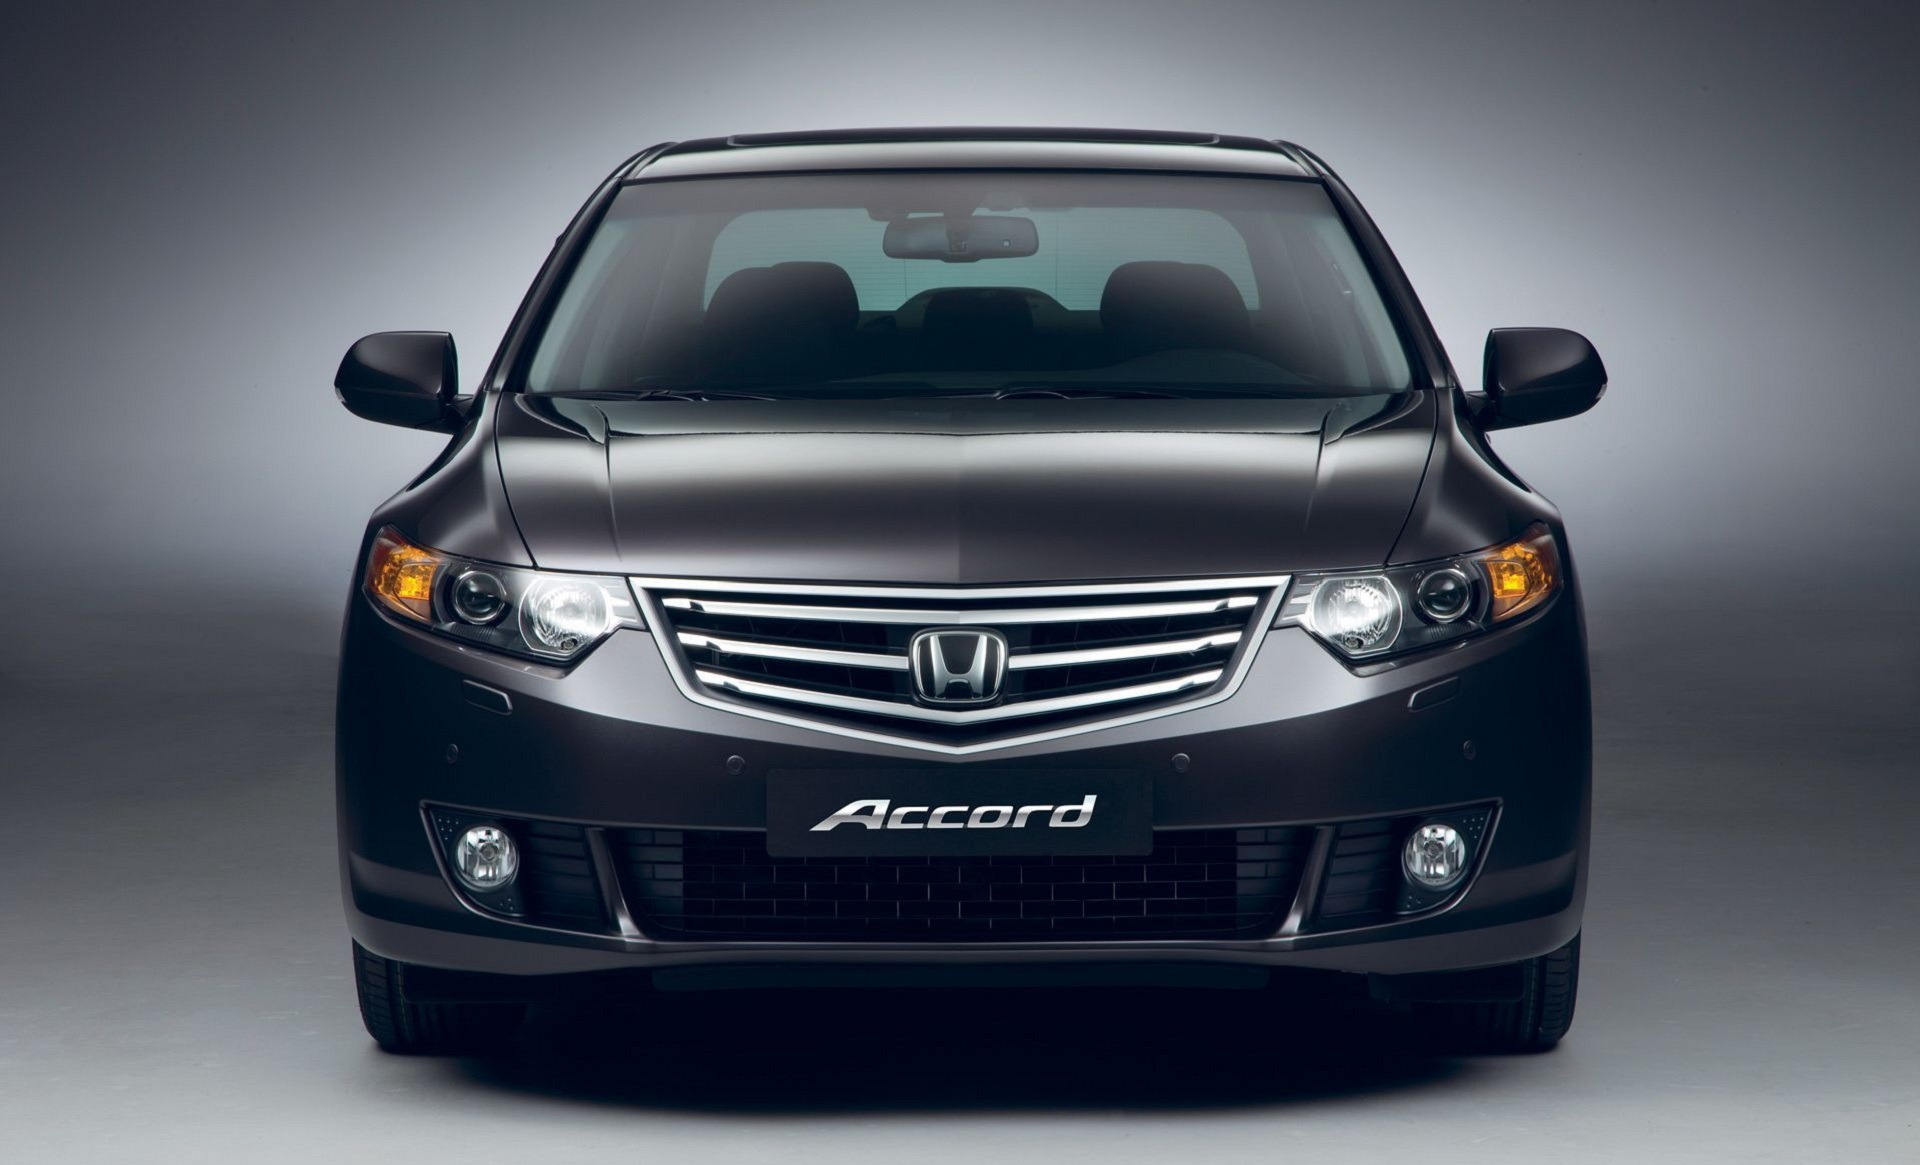 Honda Accord Hd Desktop